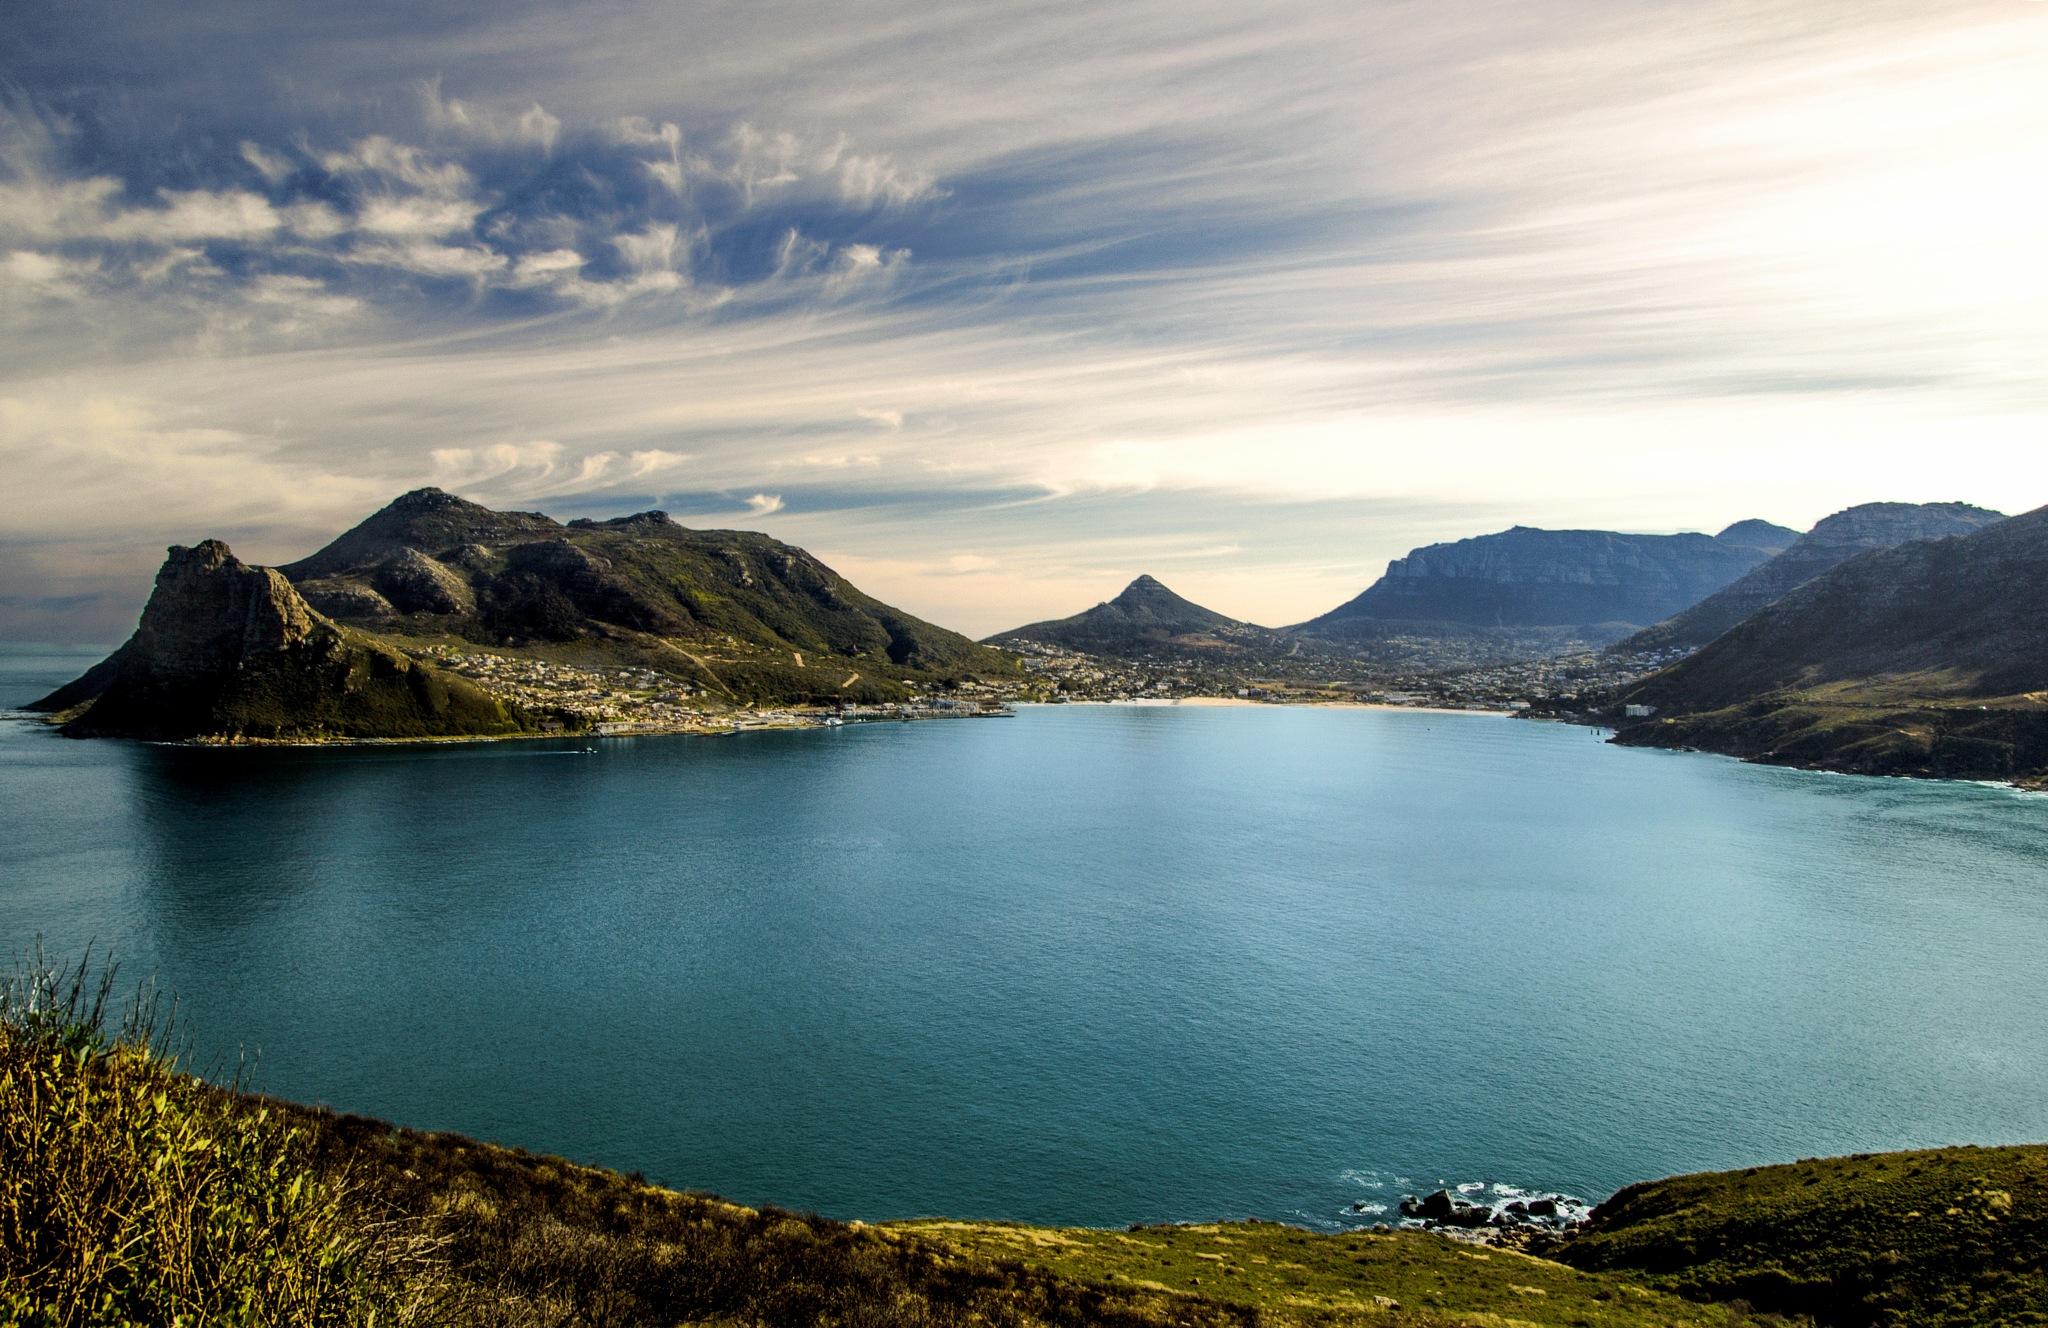 Hout Bay this morning by Nauta Piscatorque